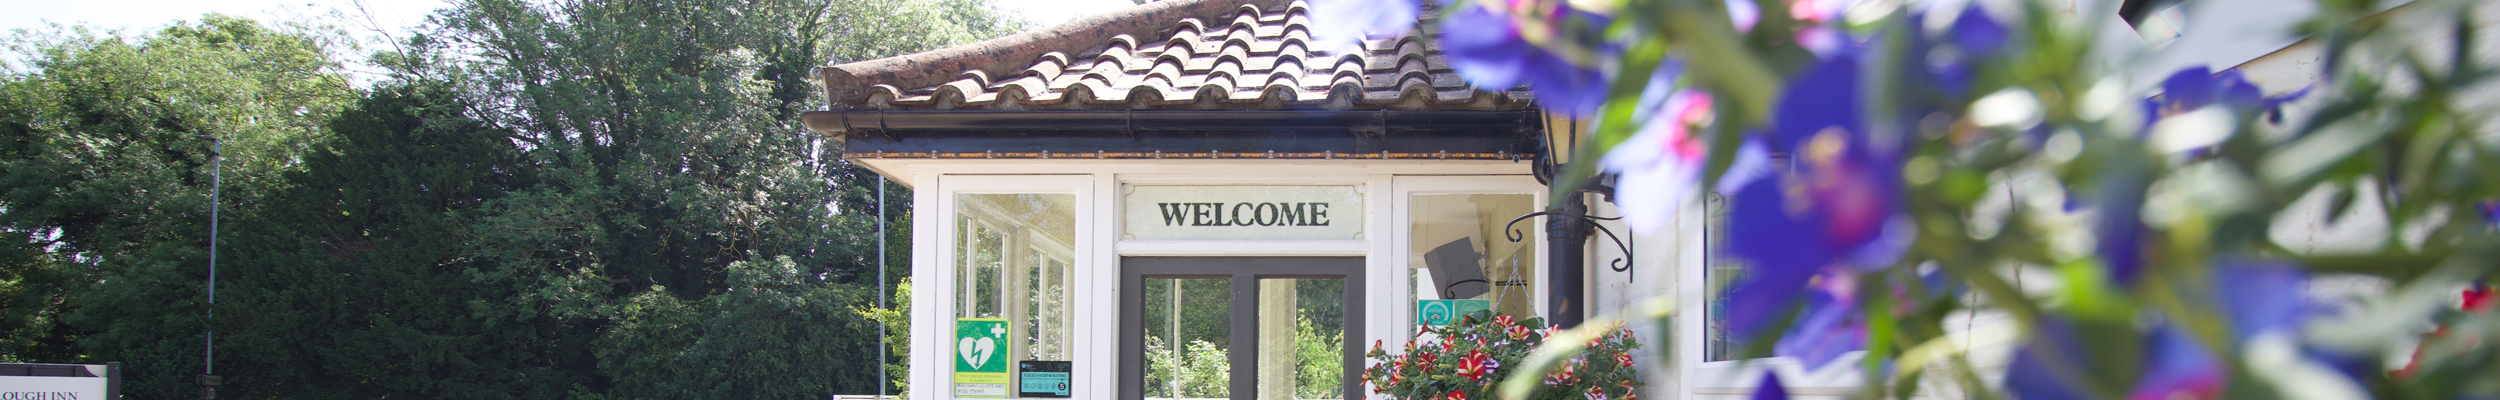 Room Gallery // Exterior shot of the entrance to The Plough Inn